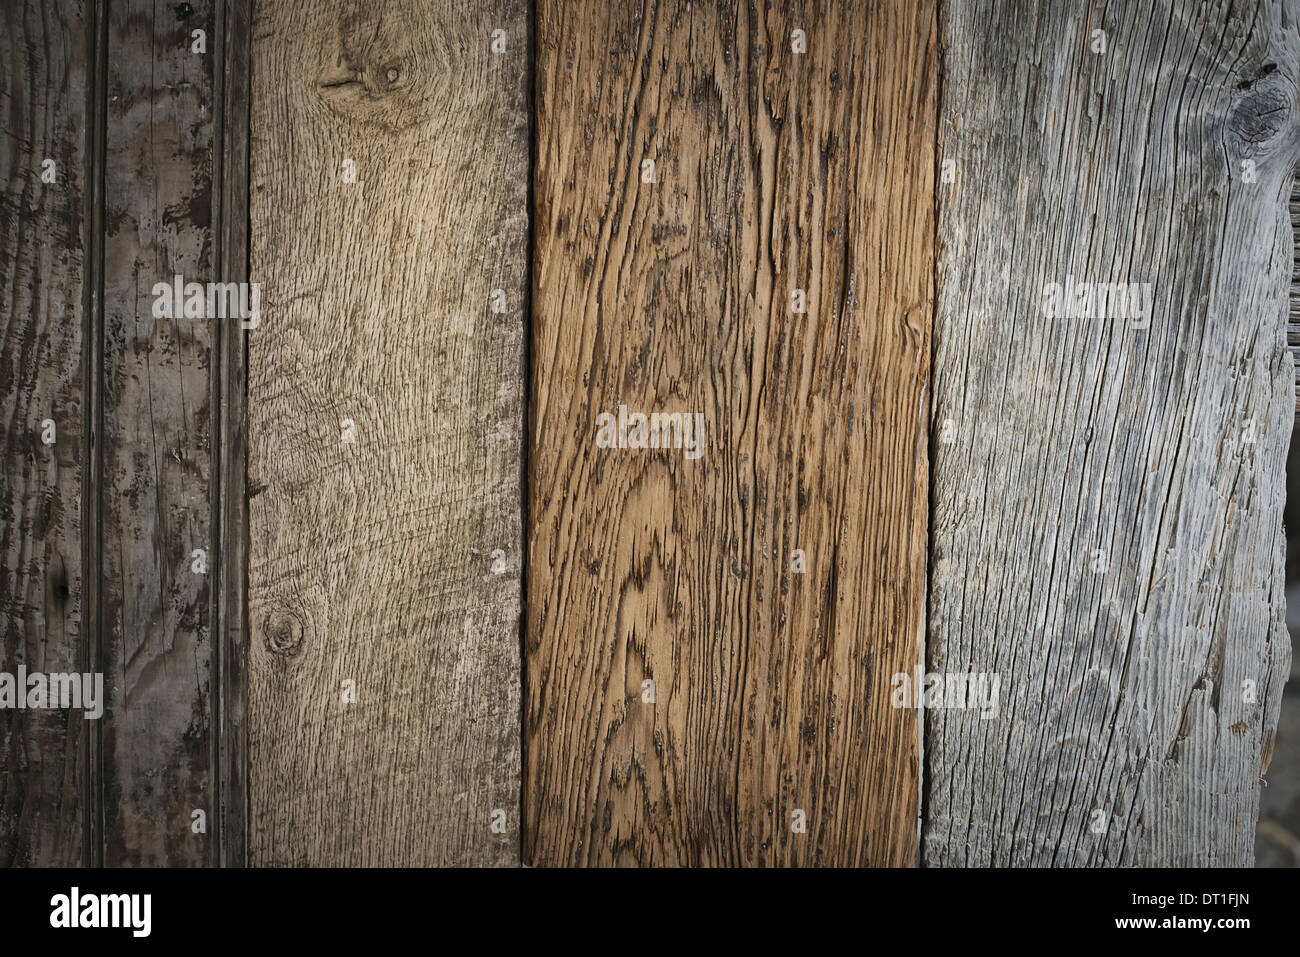 A heap of recycled reclaimed timber planks of wood Environmentally responsible Varieties of wood with grain and colour details - Stock Image